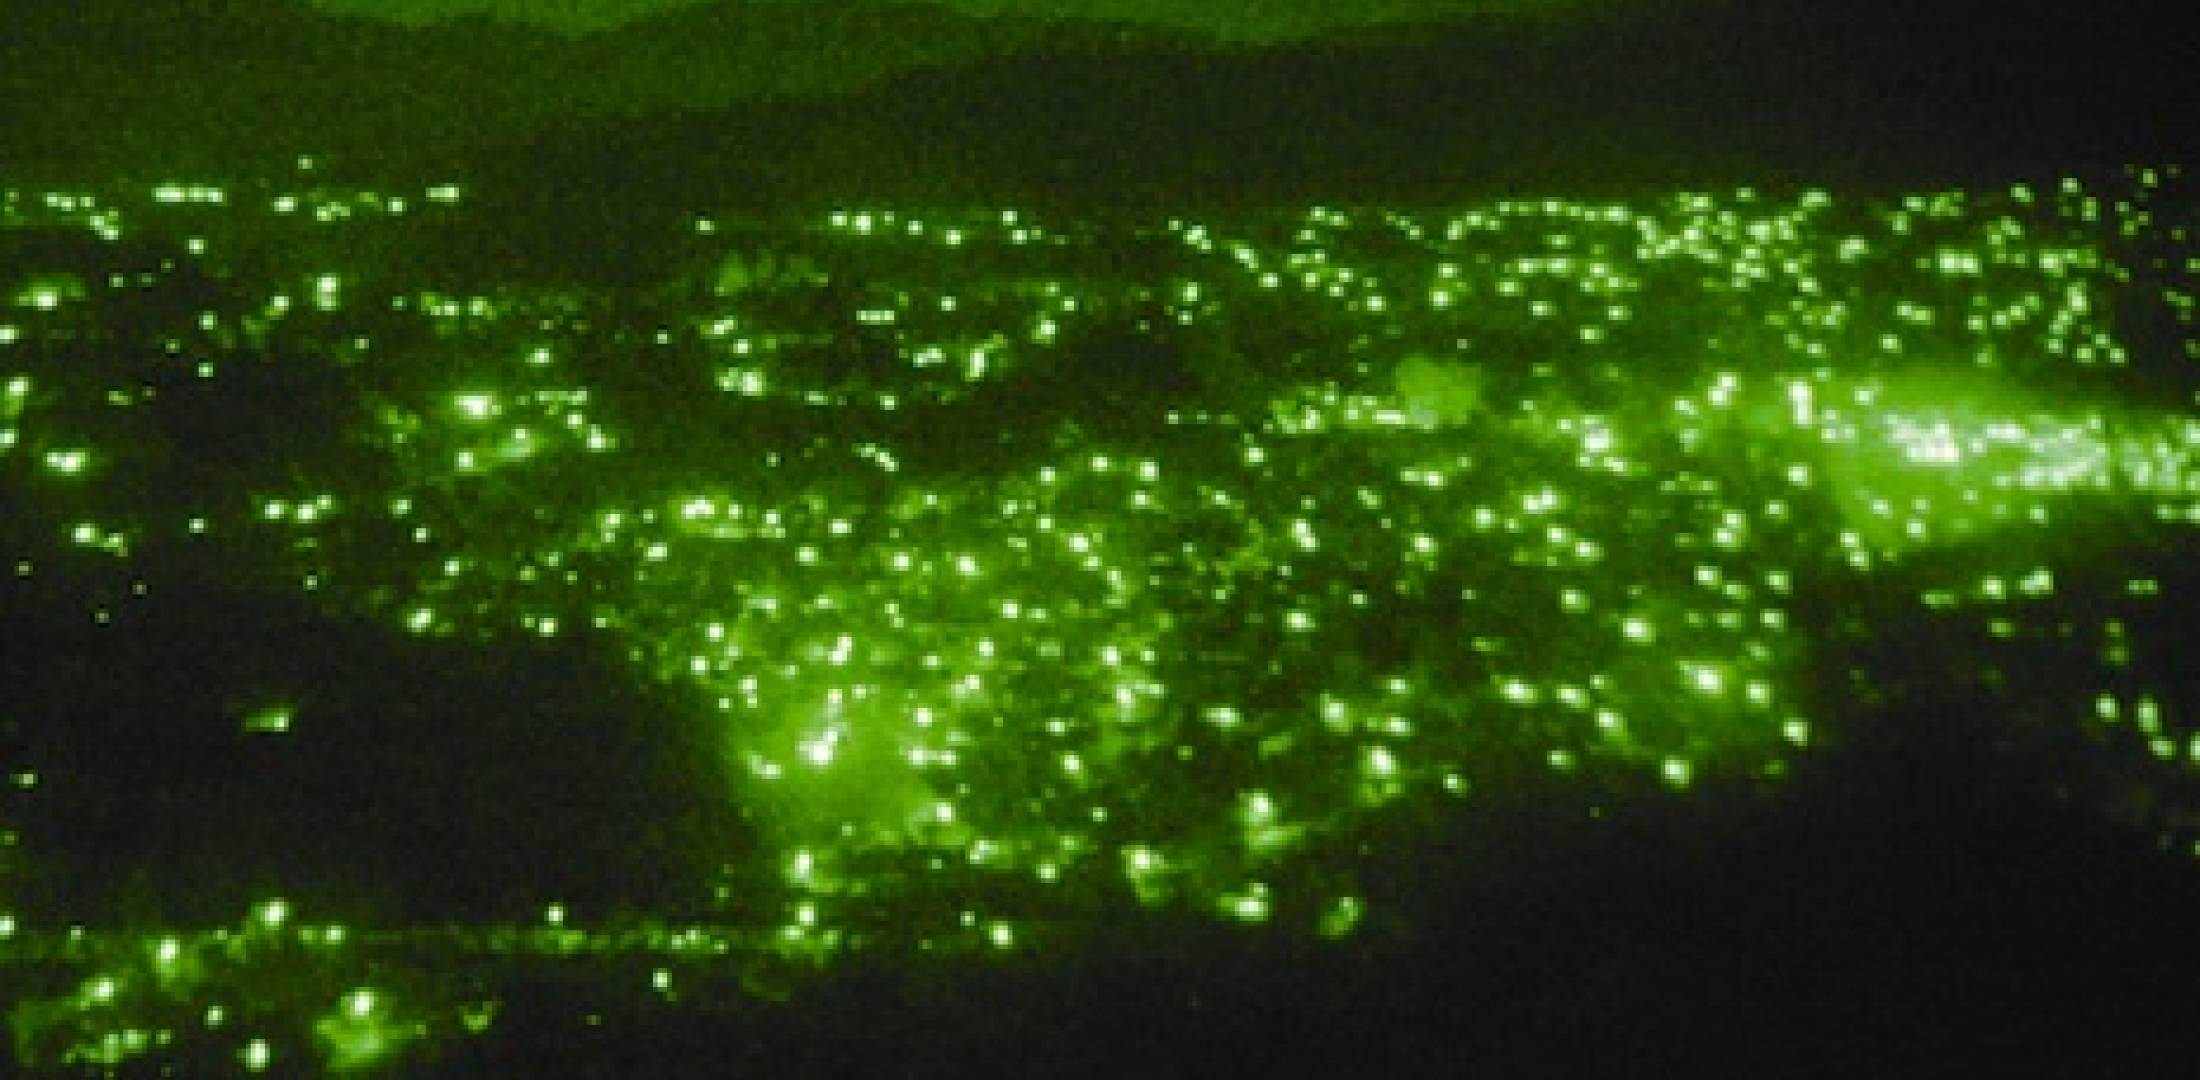 View from night vision goggles